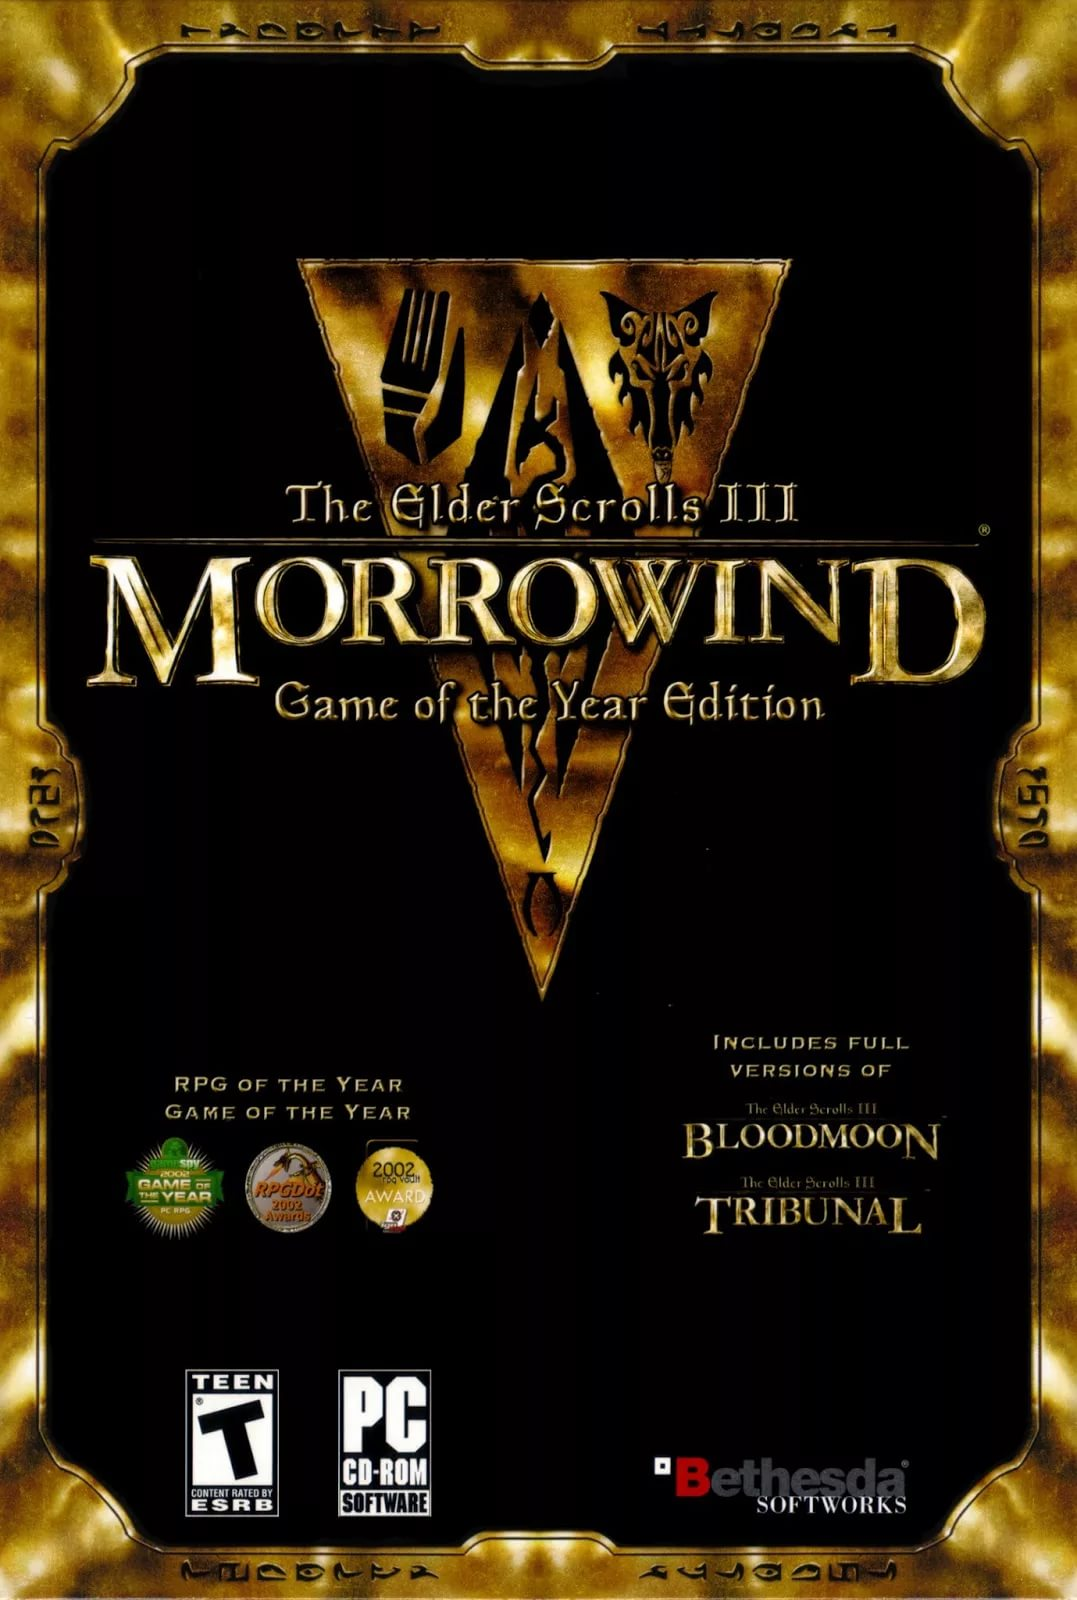 Buy The Elder Scrolls III: Morrowind GOTY Edition GLOBAL and